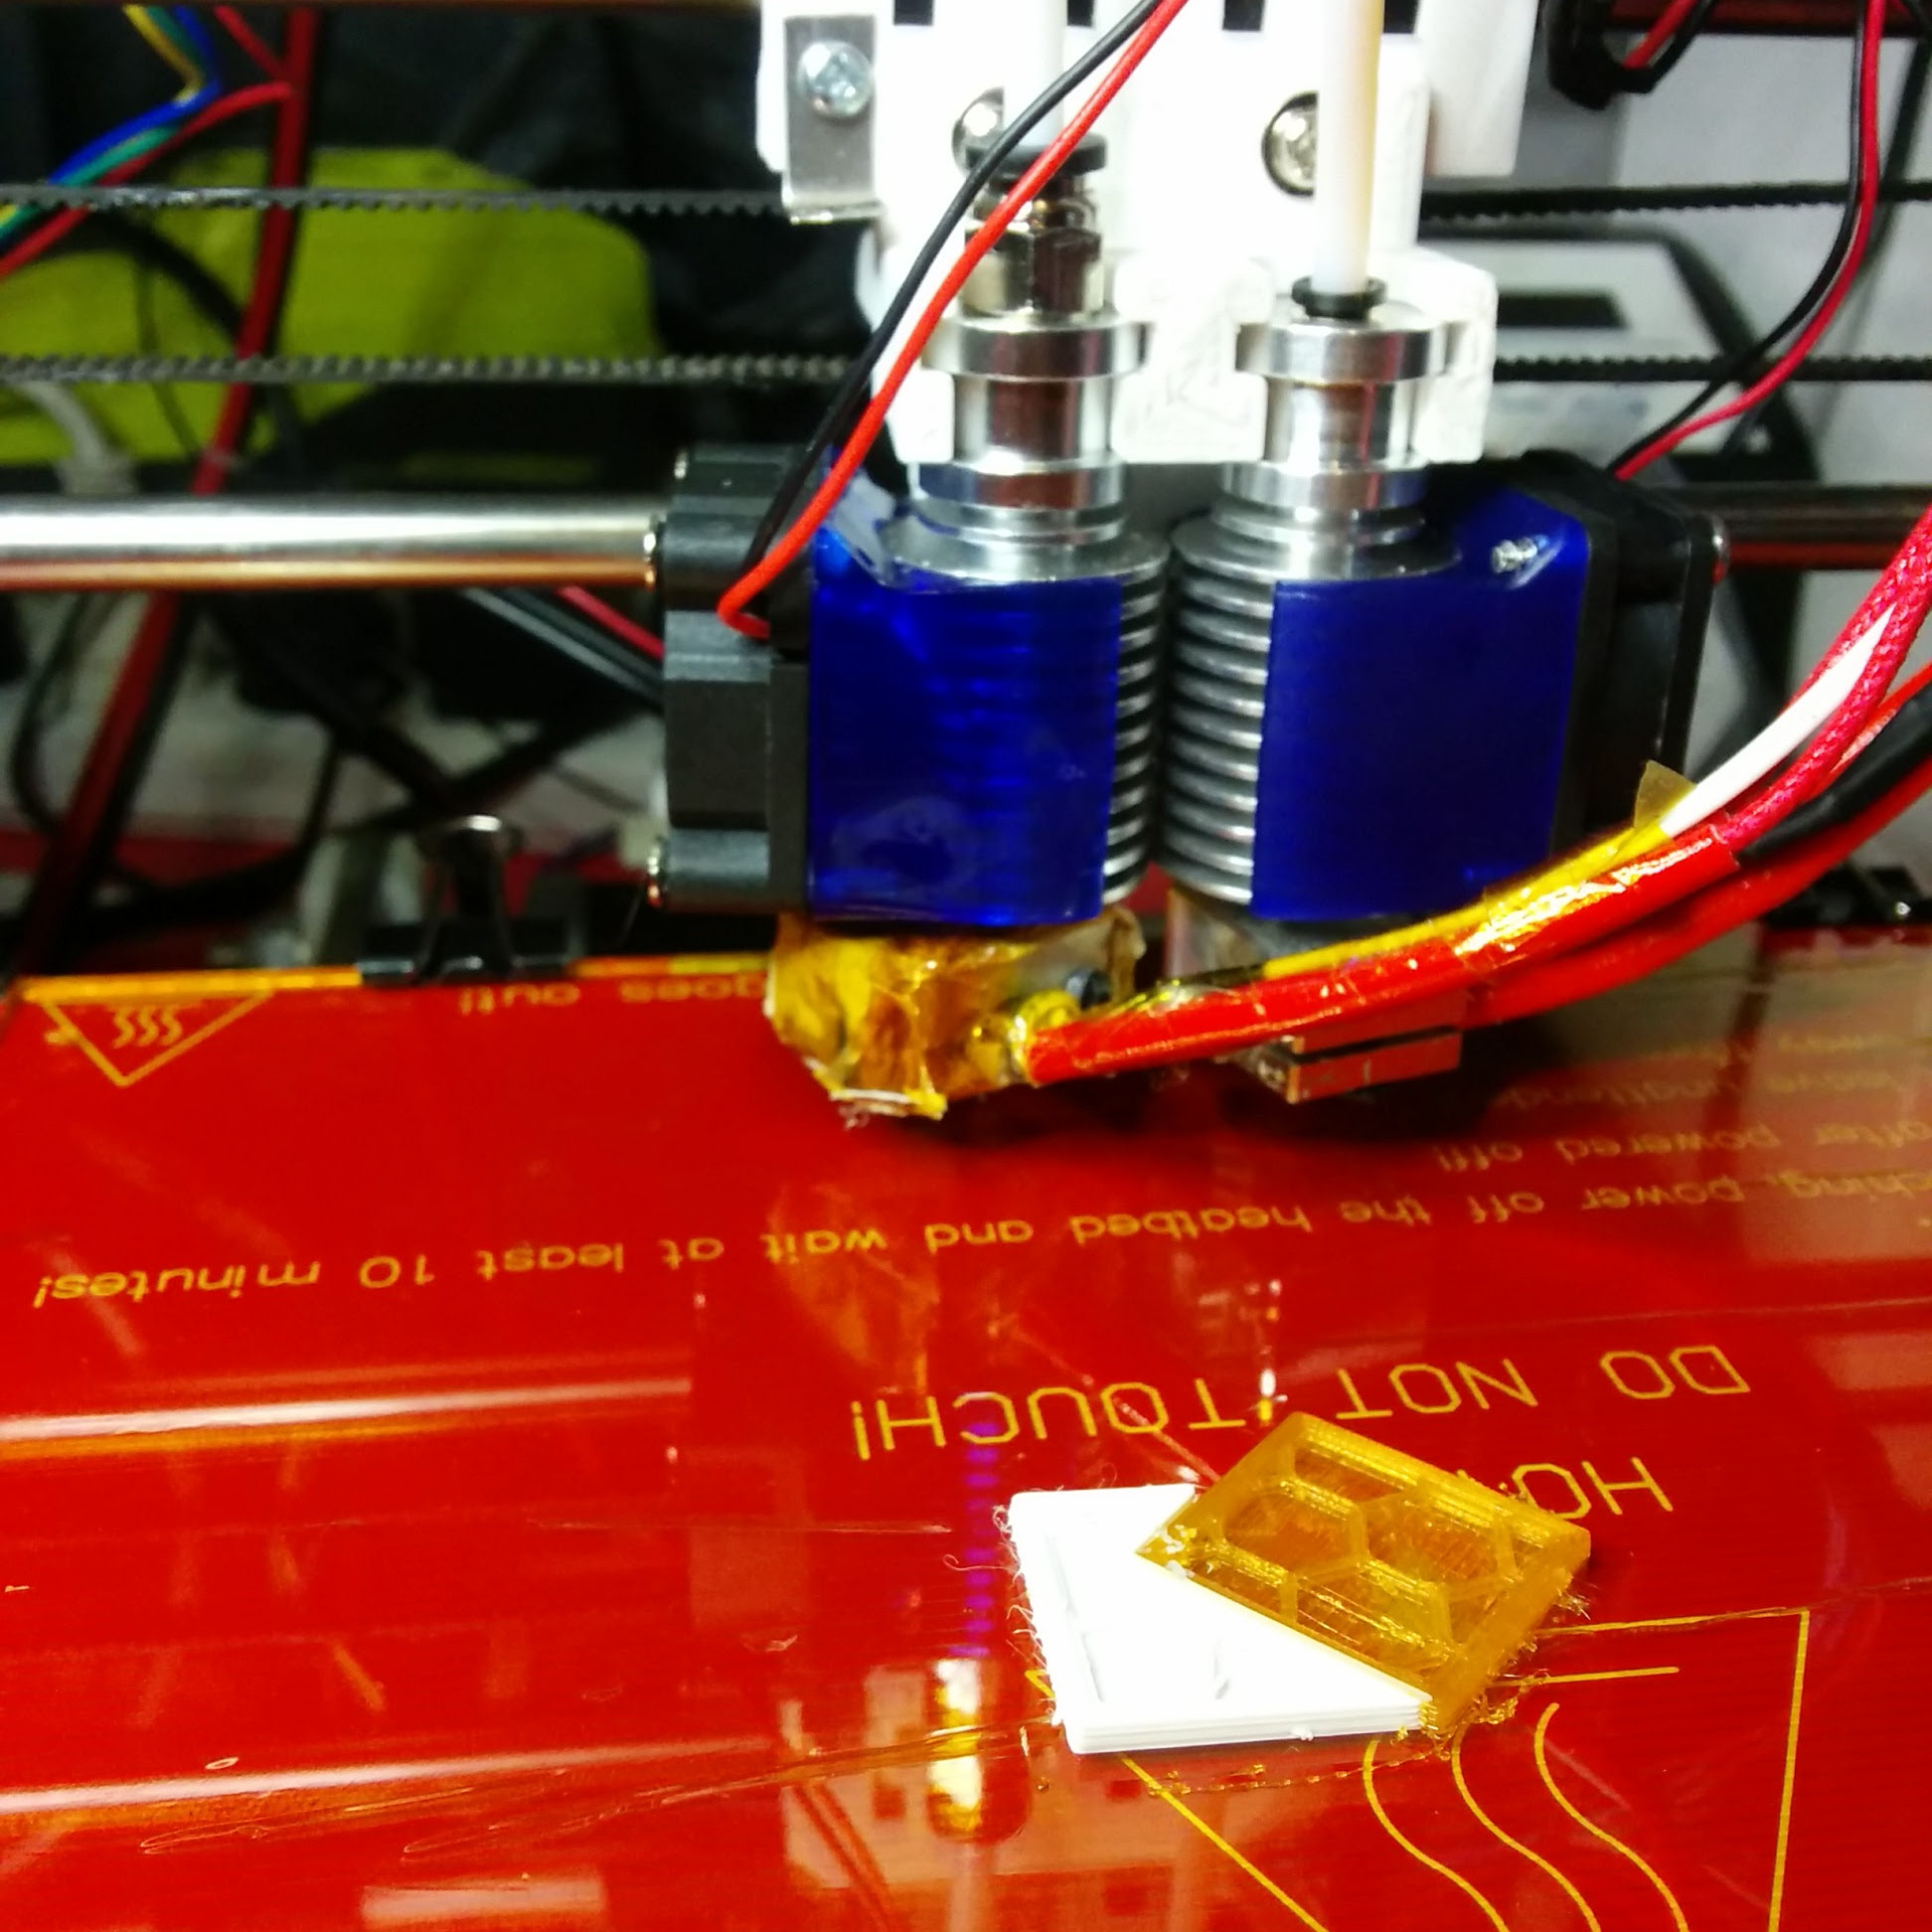 Laserphile Hydra dual head extruder system